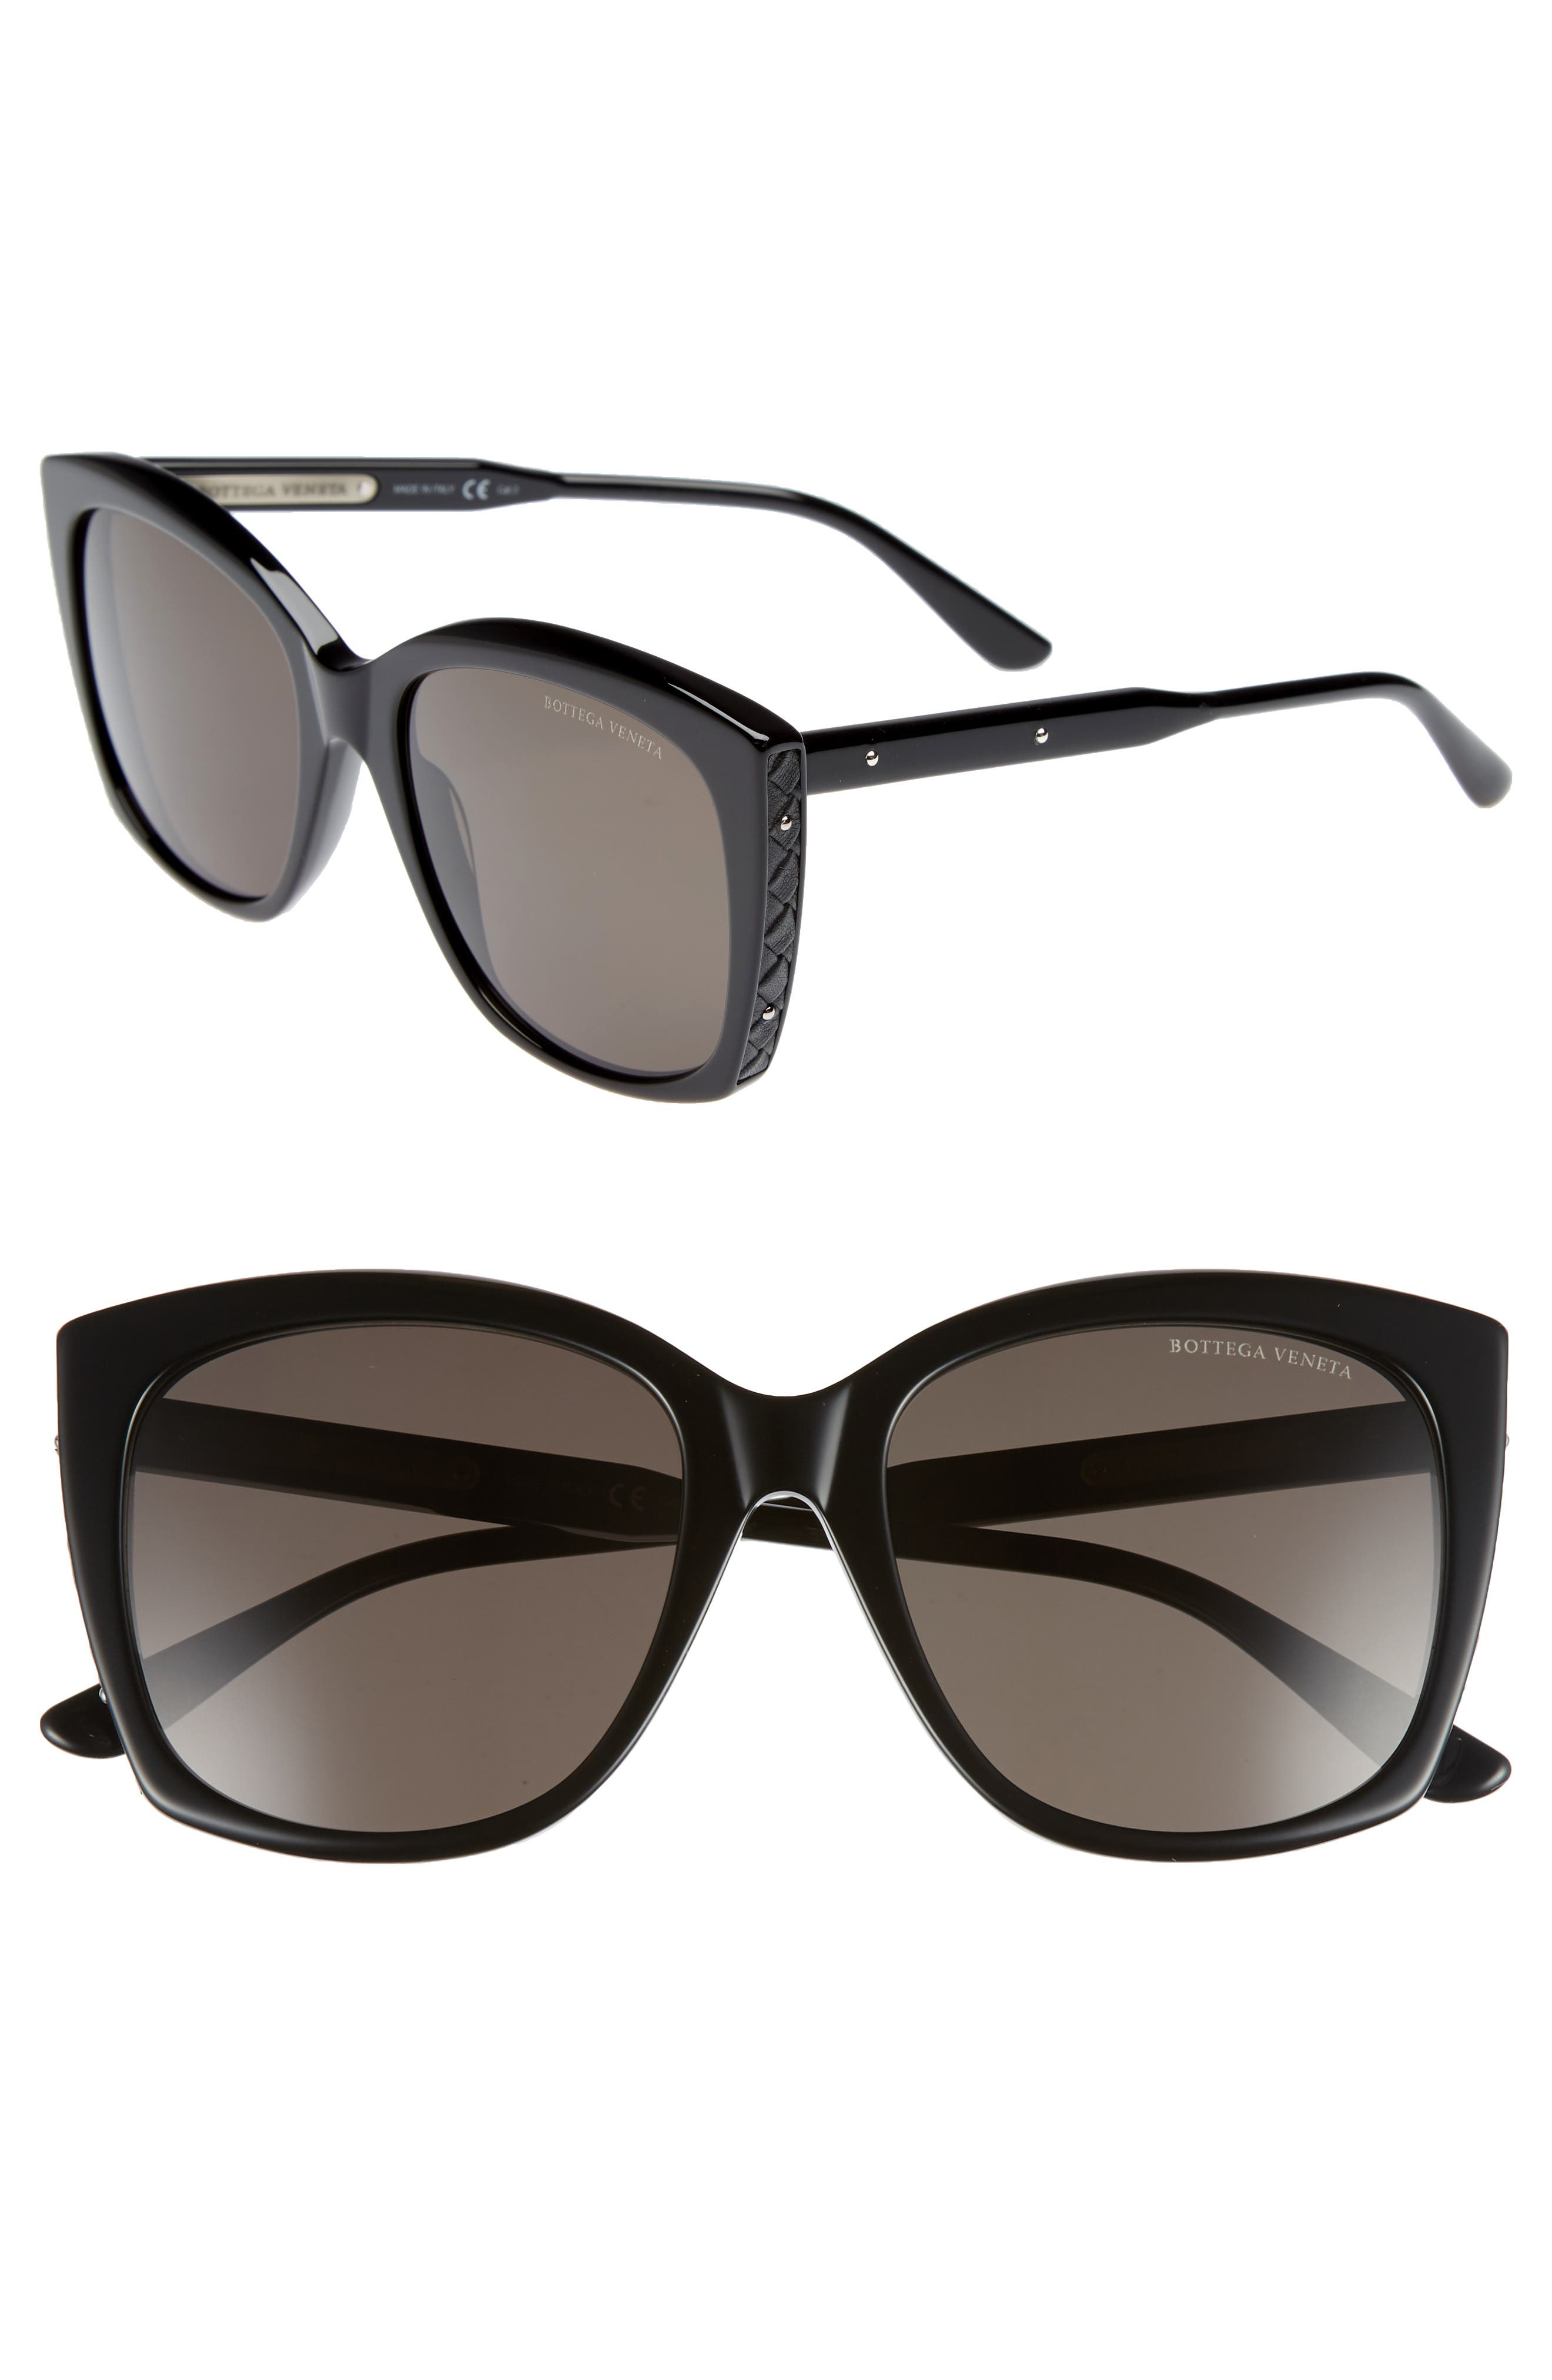 Women'S Anti-Reflective Cat Eye Sunglasses, 58Mm in Black